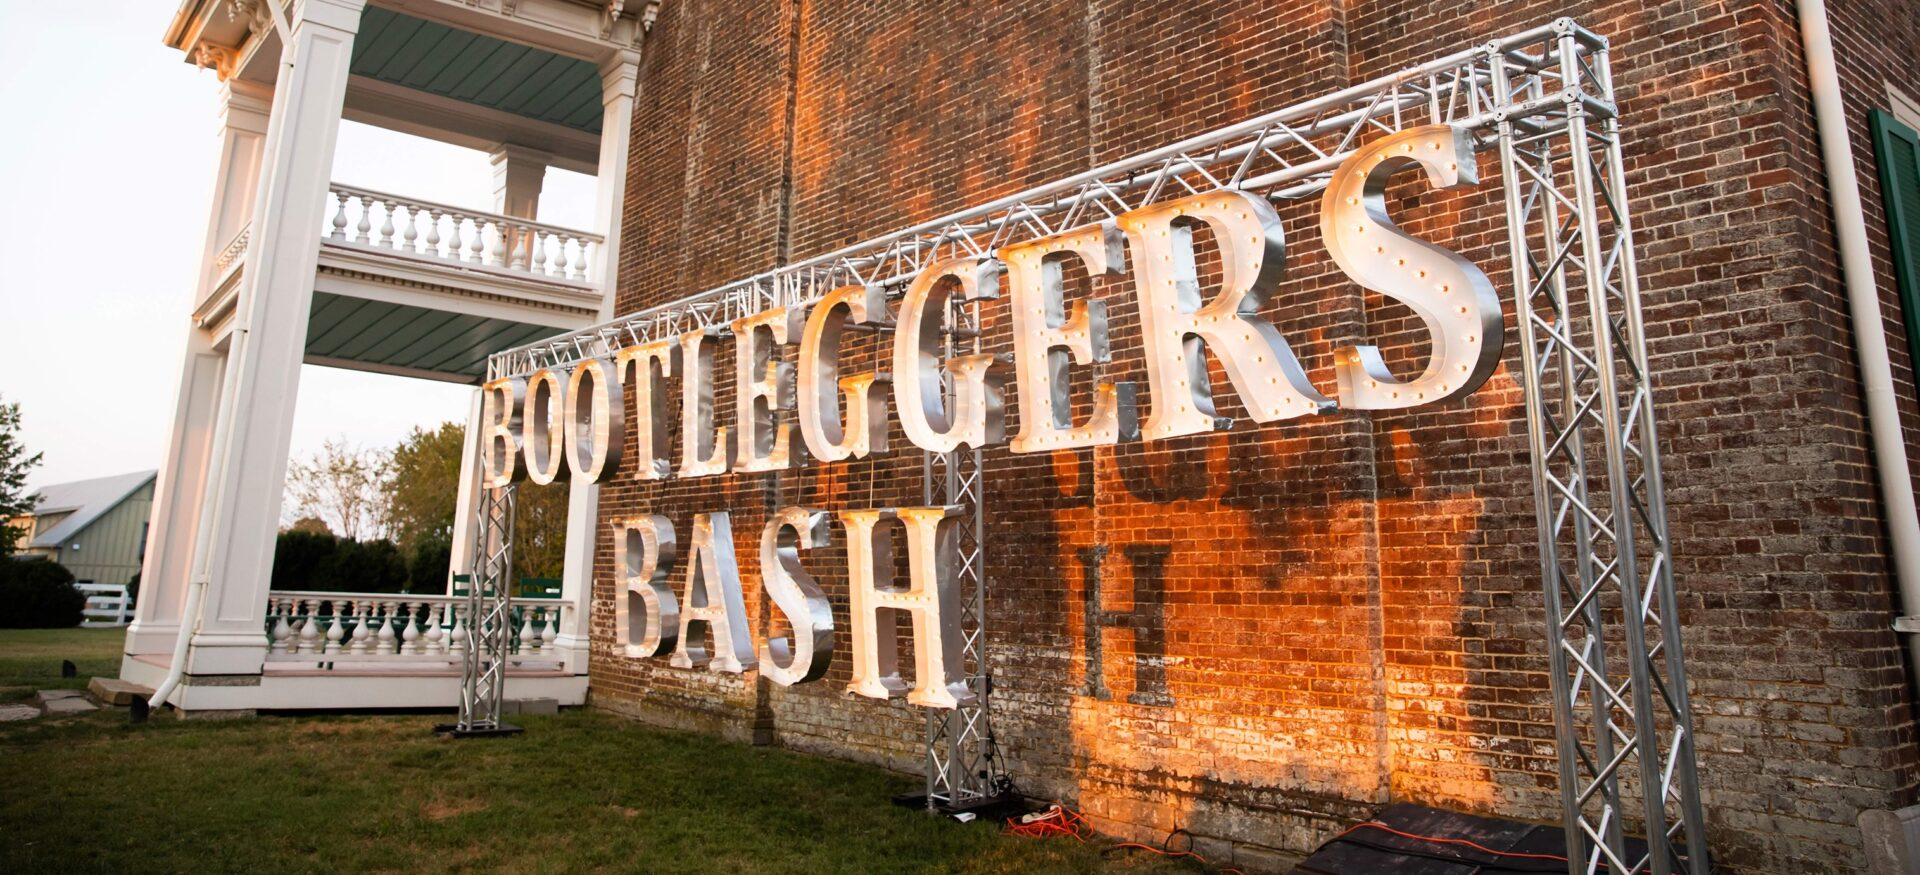 Bootlegger's Bash sign, an annual event in Franklin, TN featuring Tennessee distillers, a traditional Southern dinner and live entertainment featuring Rock & Roll Pianos – a dueling piano team.